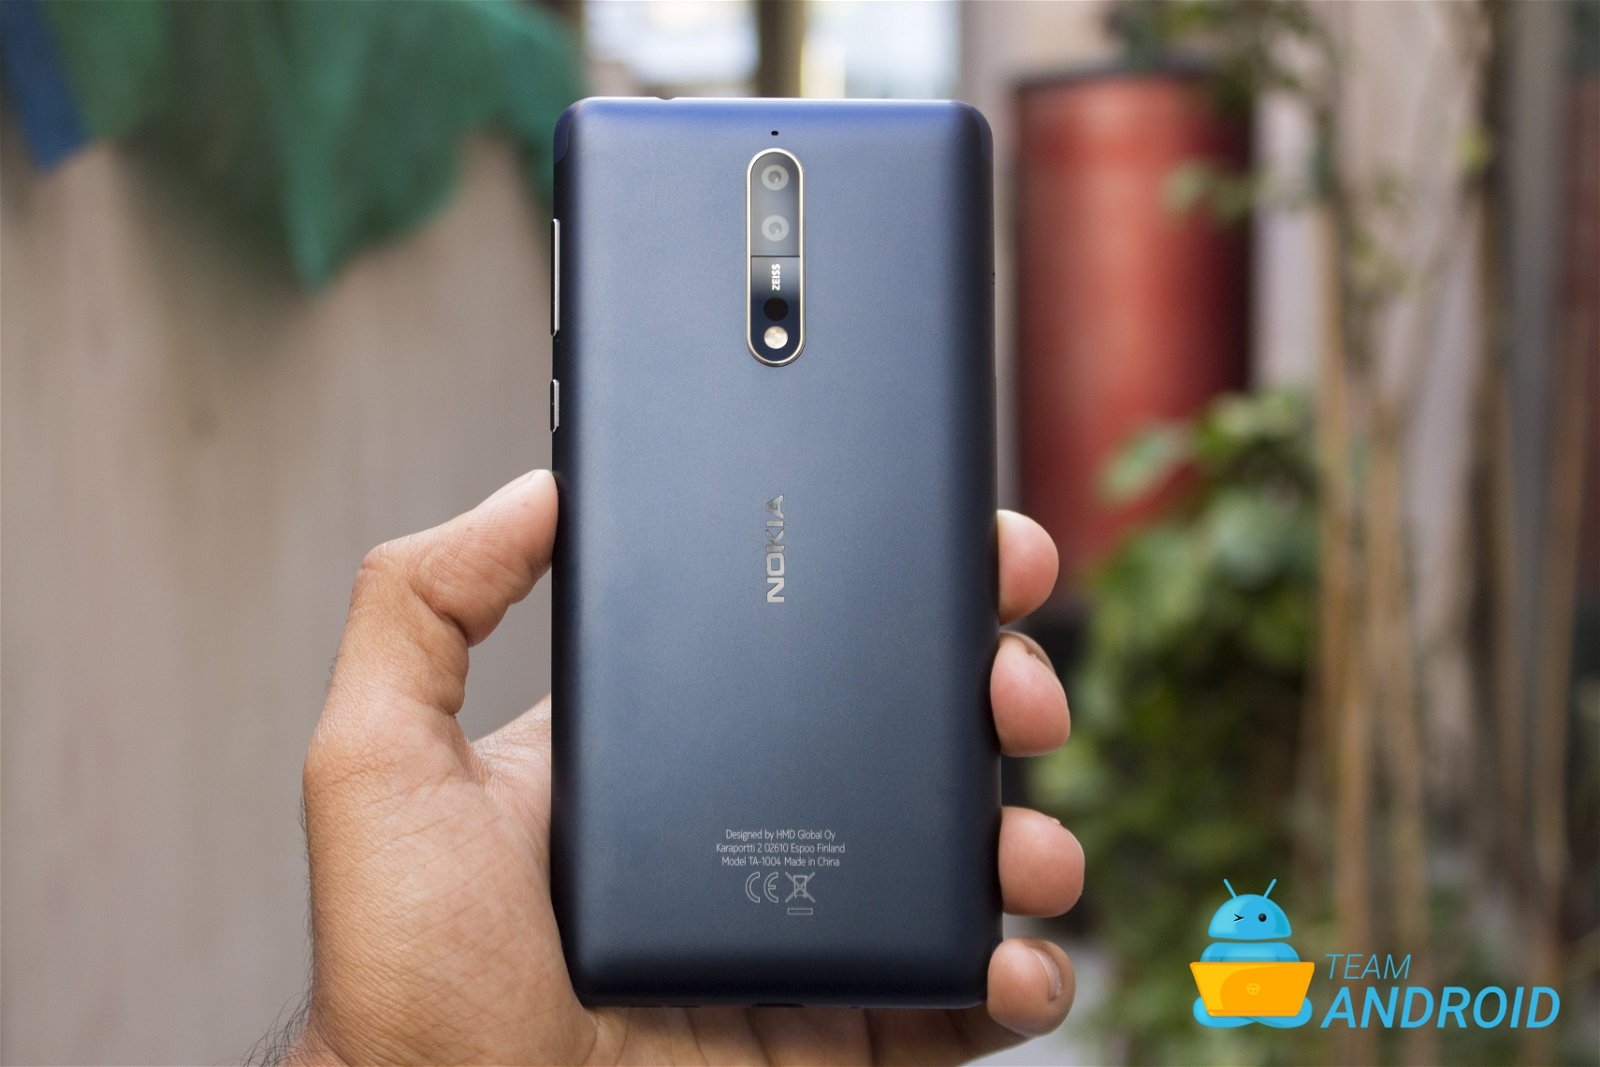 HOW TO: Install TWRP 3 2 3 Recovery on Nokia 8 - Tutorial